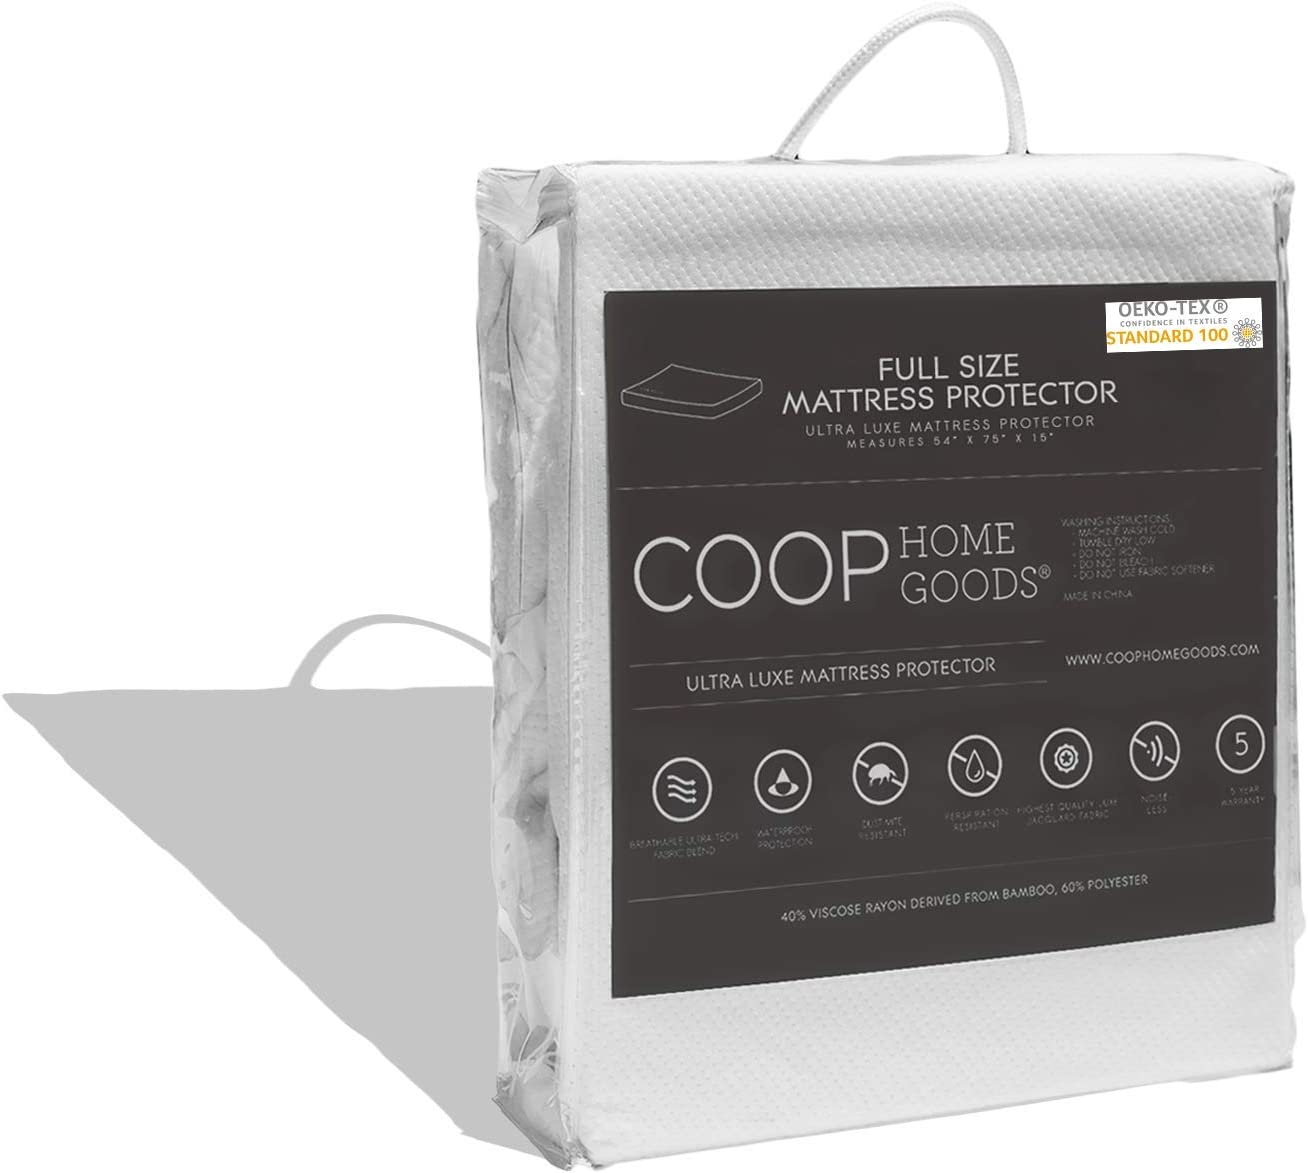 COOP HOME GOODS - Mattress Protector - Waterproof and Hypoallergenic - Soft and Noiseless Lulltra® Fabric from Bamboo Derived Rayon - Protection Against fluids - Oeko-TEX Certified - Full